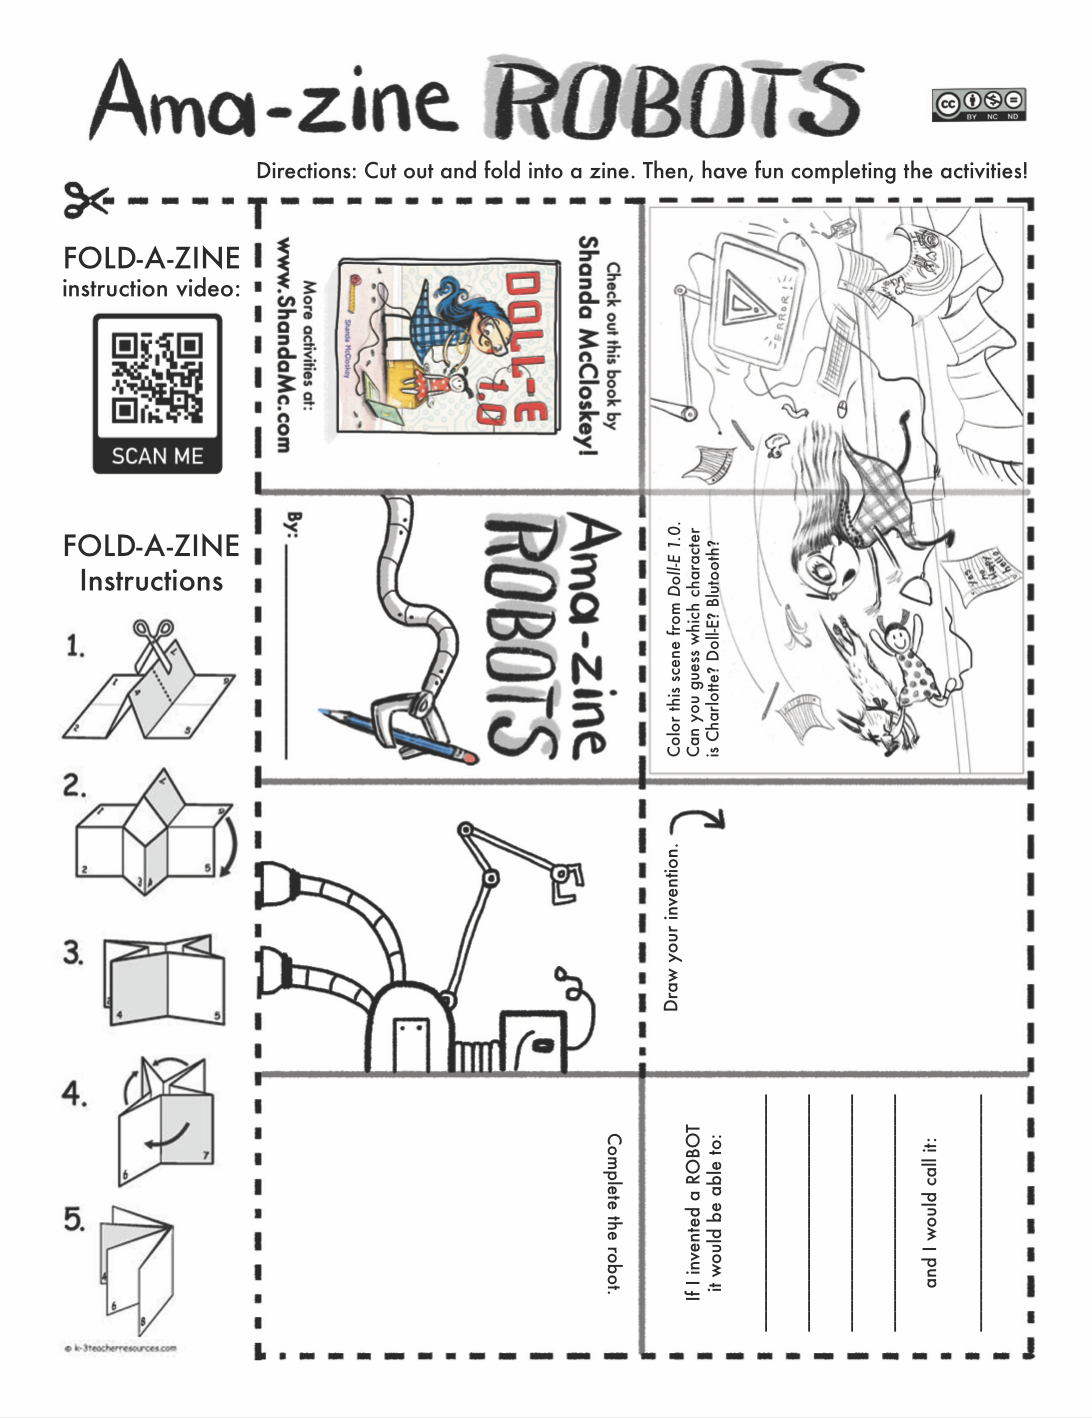 Amazing robots zine activity inspired by the book, Doll-E 1.0, by Shanda McCloskey